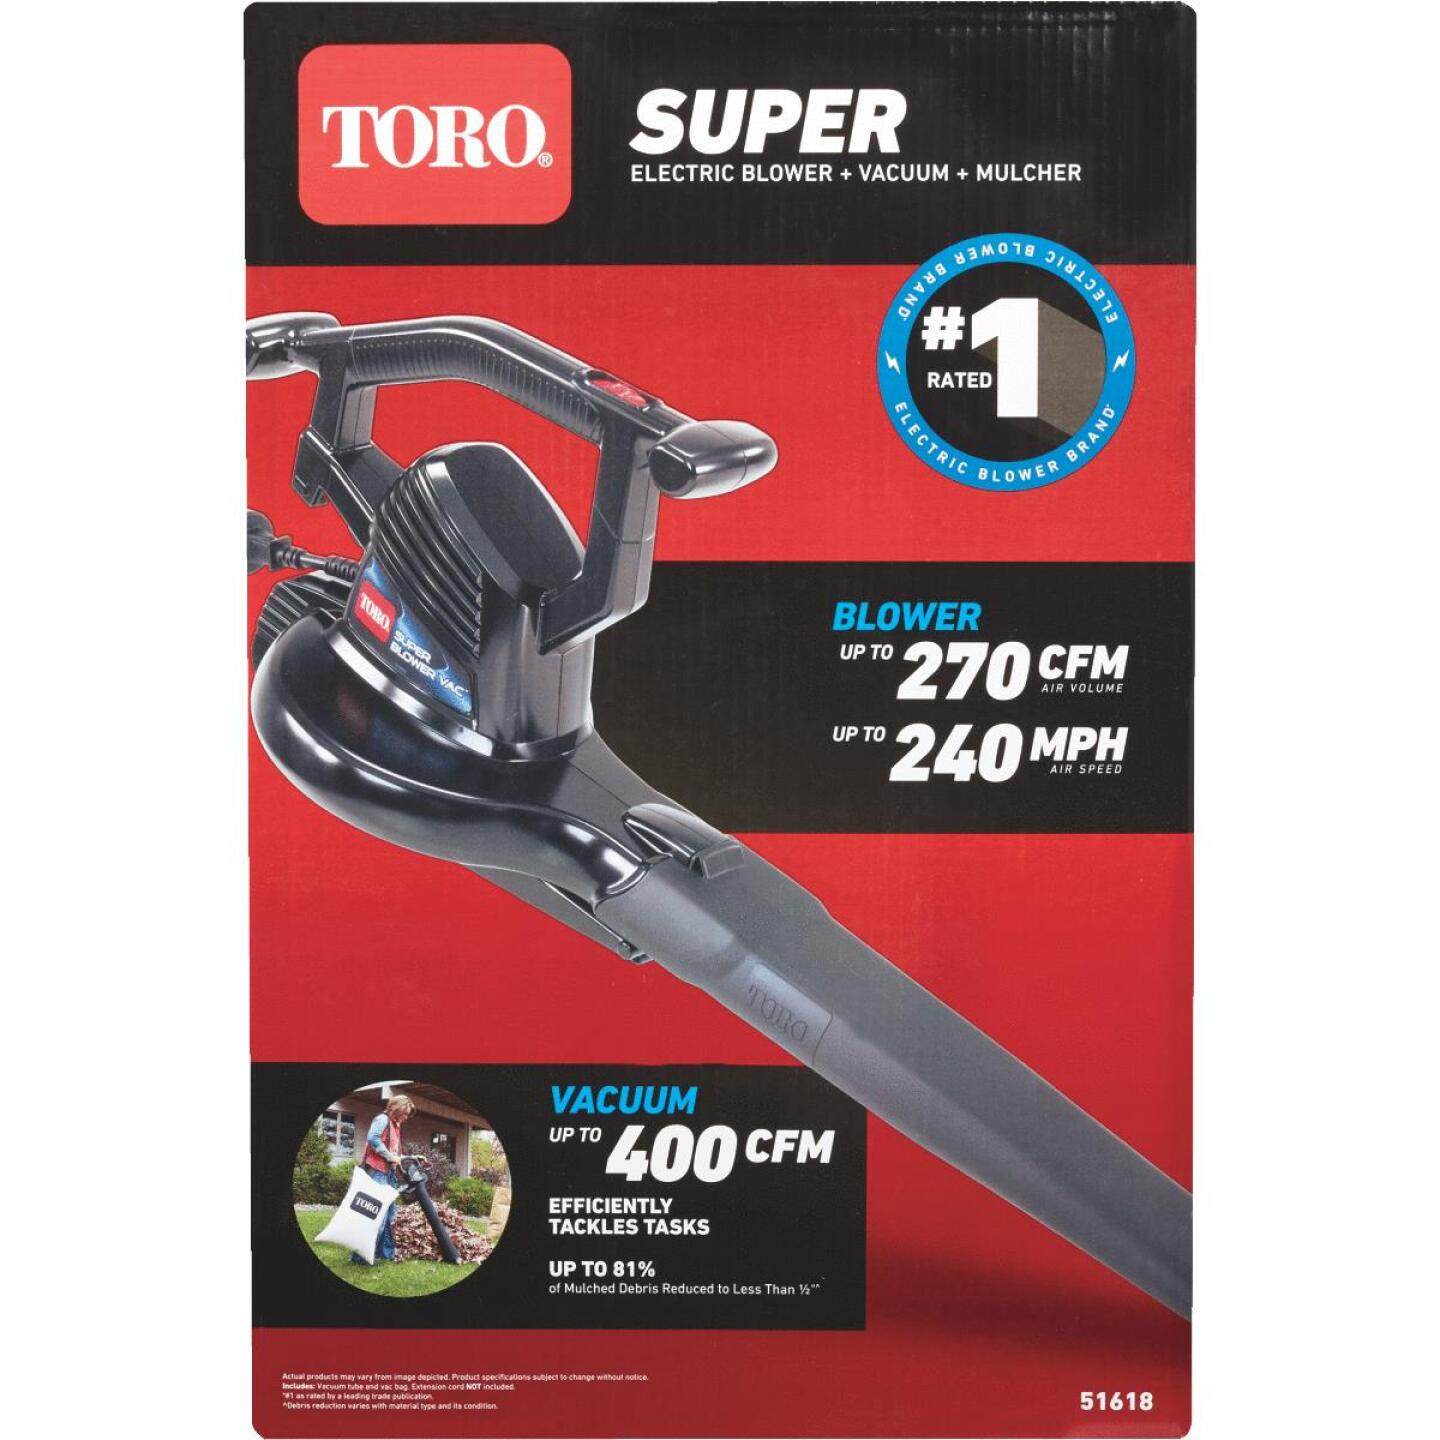 Toro Super 230 Mph 390 Cfm 12 Amp Electric Blower Vacuum Mulcher Do It Best World S Largest Hardware Store